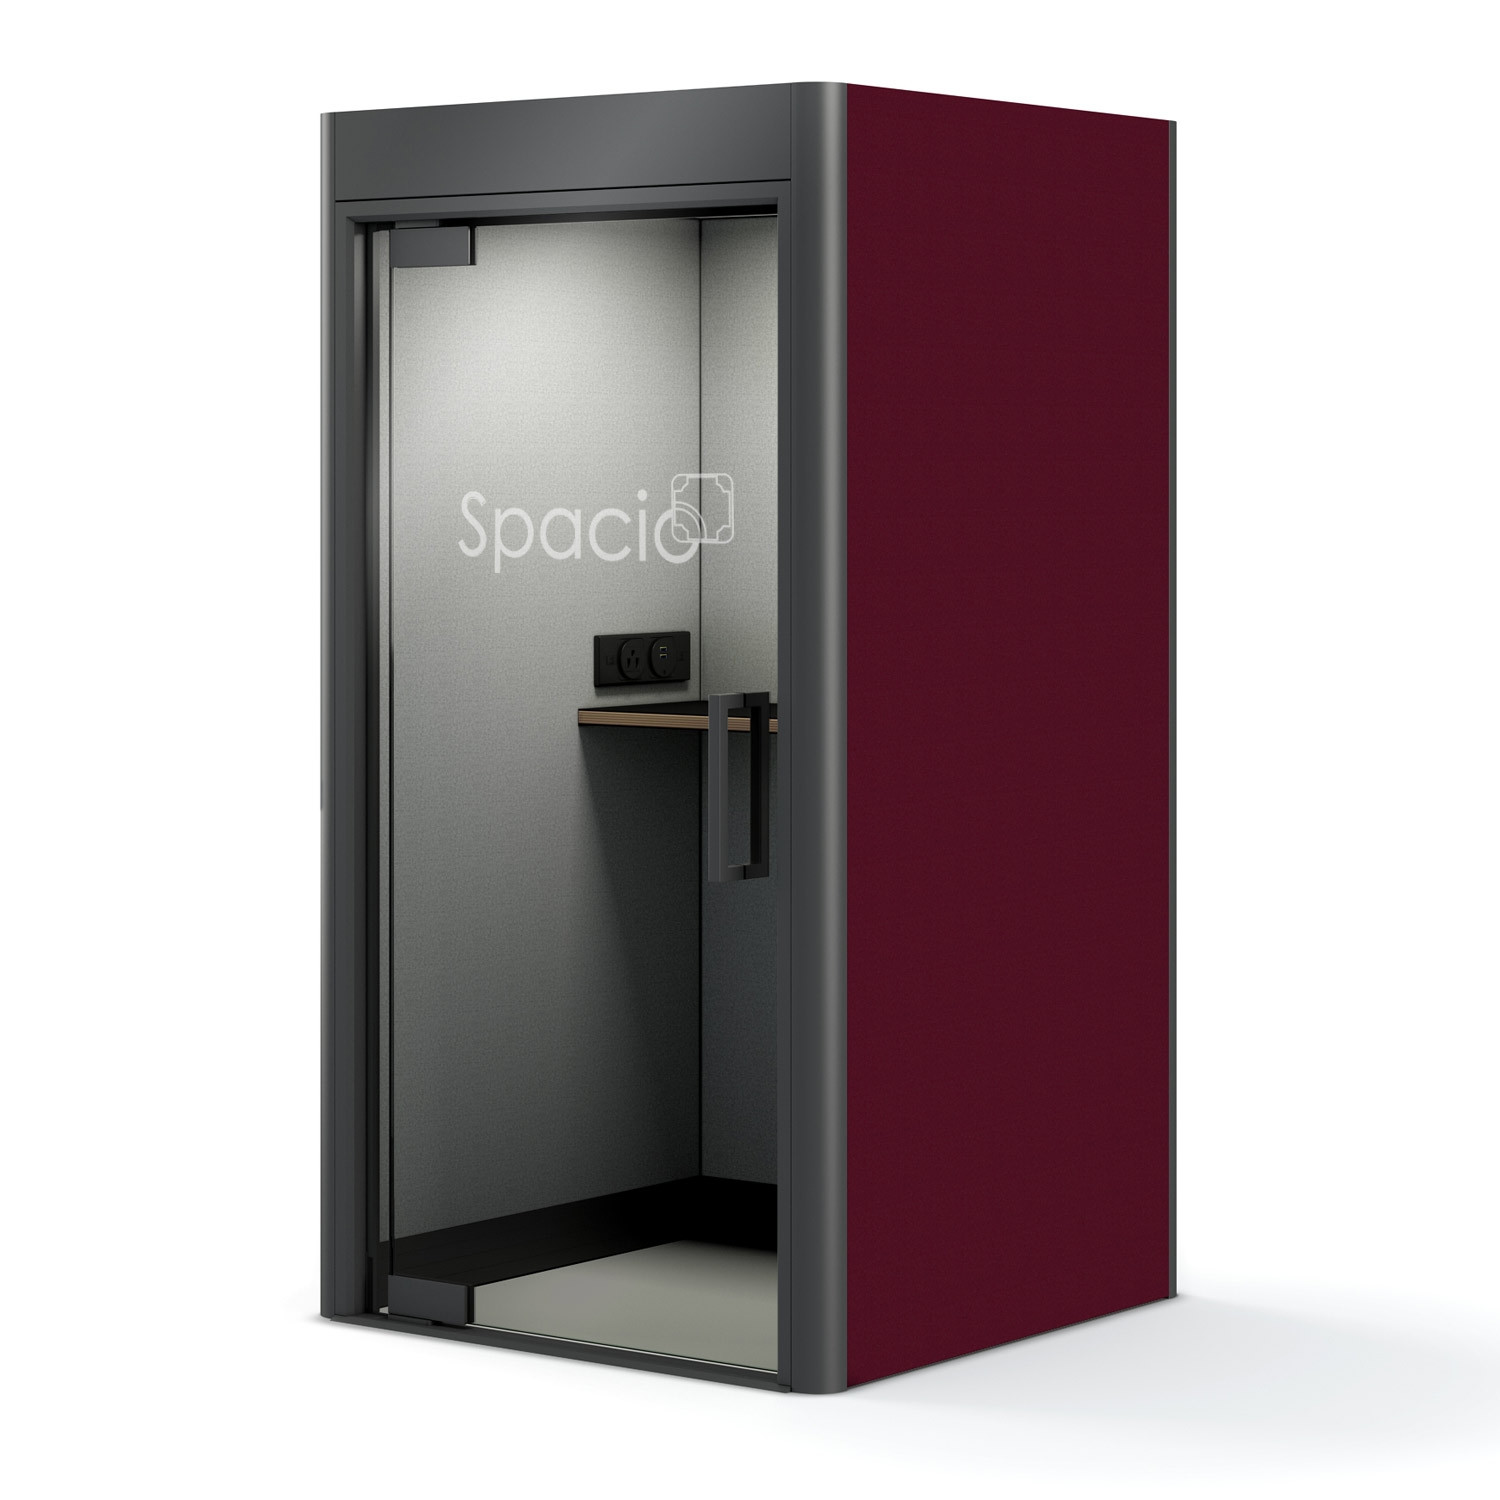 Spacio telephone Booth